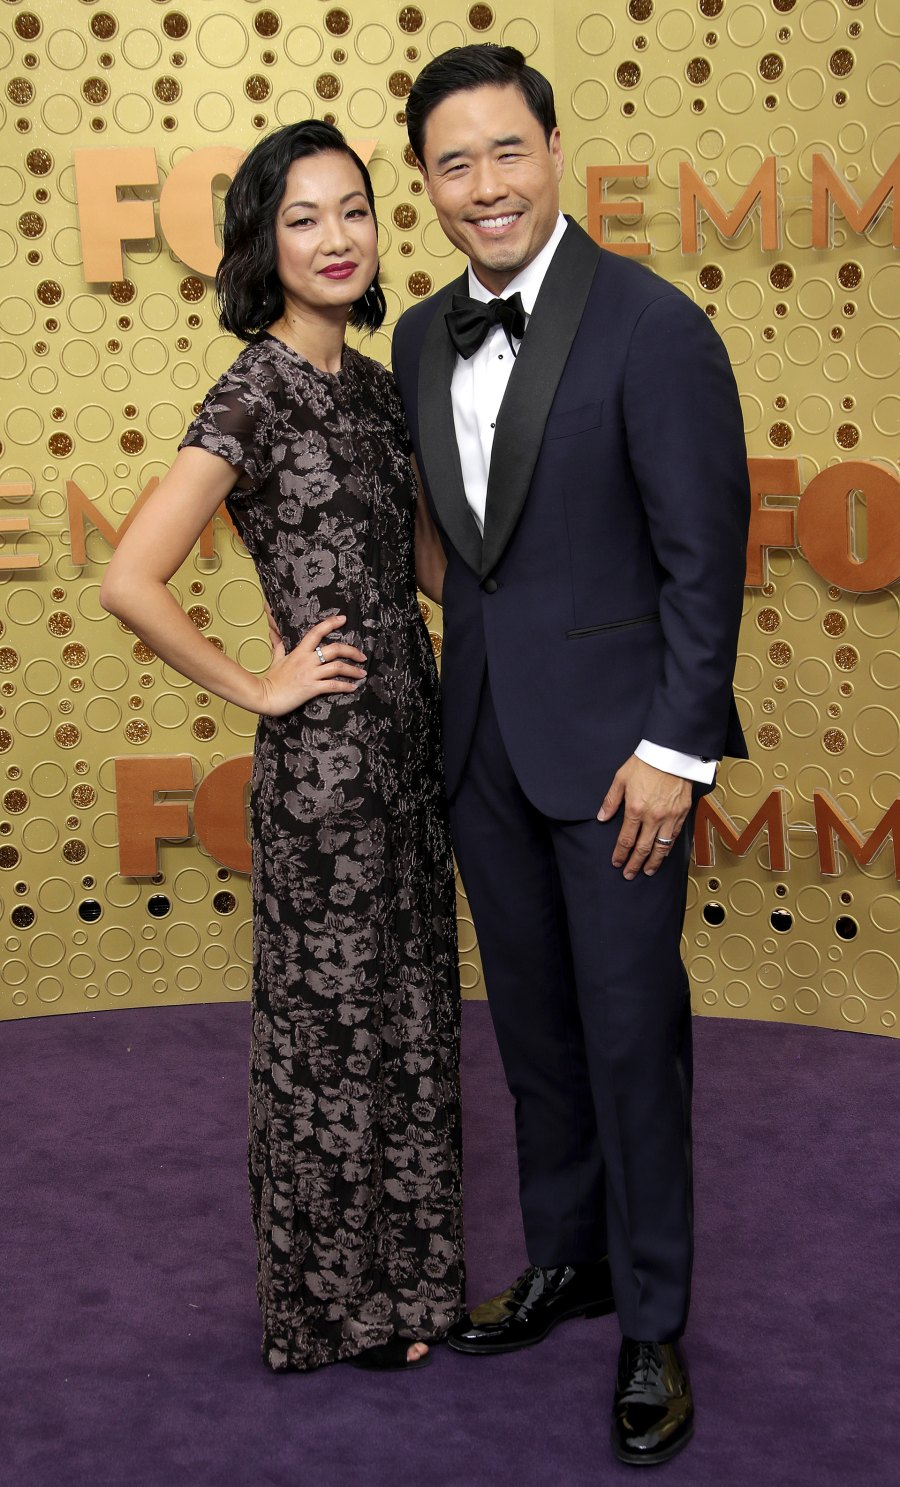 Emmys 2019 Stylish Couples - Randall Park and Jae W. Suh